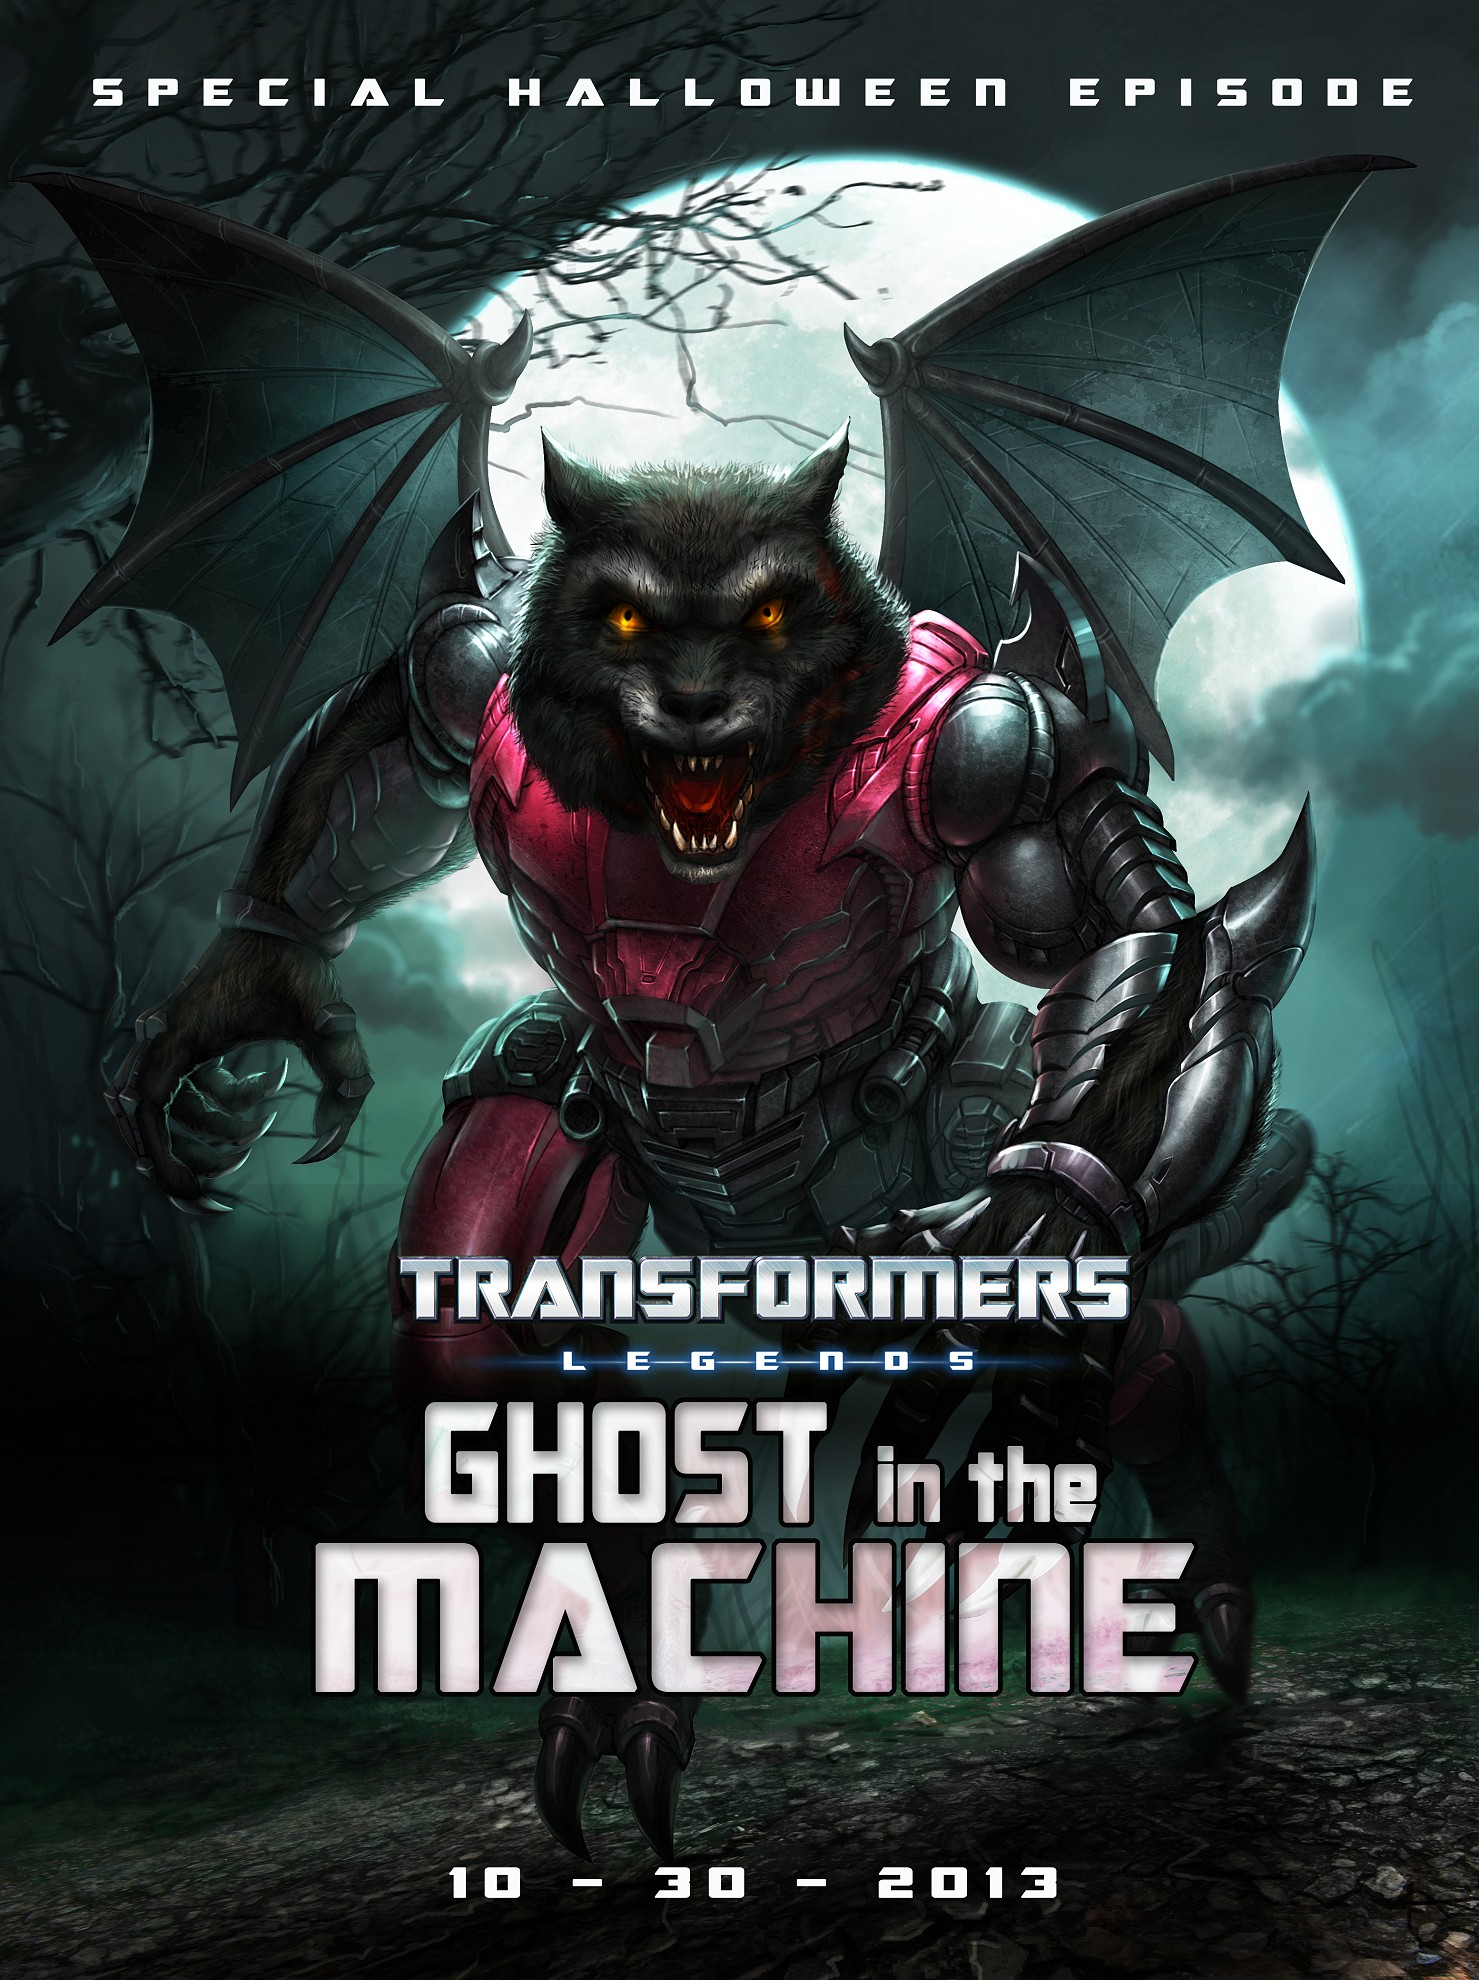 transformers ghost in the machine